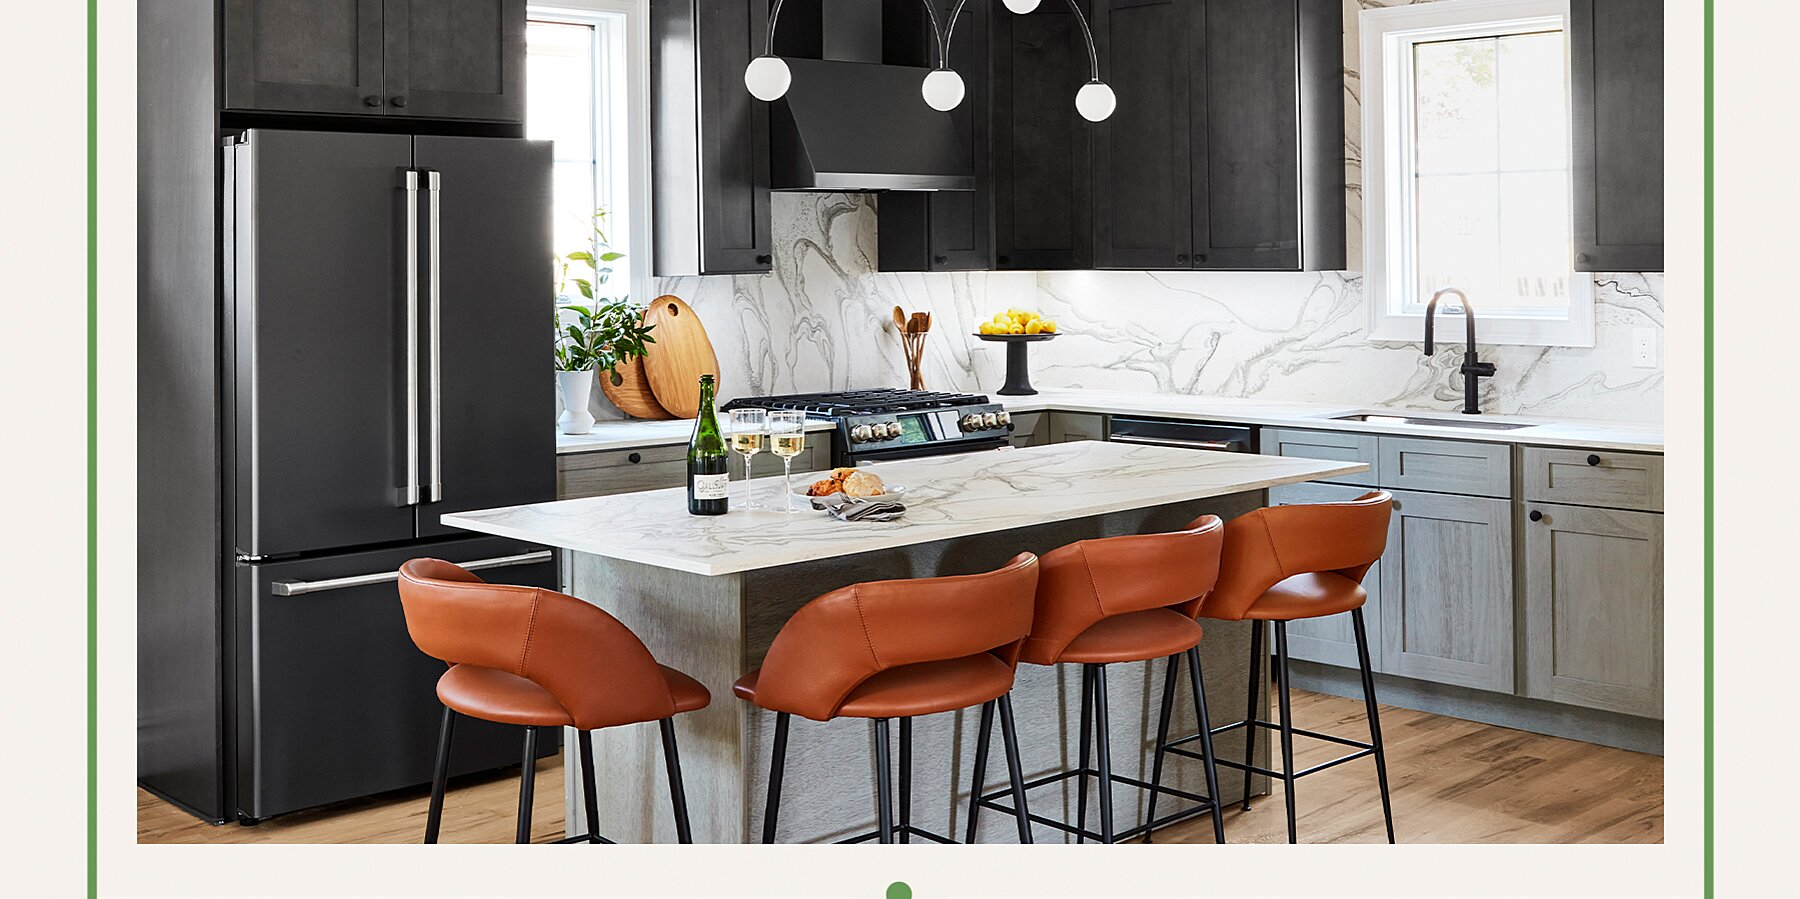 How to Design a Kitchen You'll Never Regret, According to Real Simple Home Designer Delia Kenza